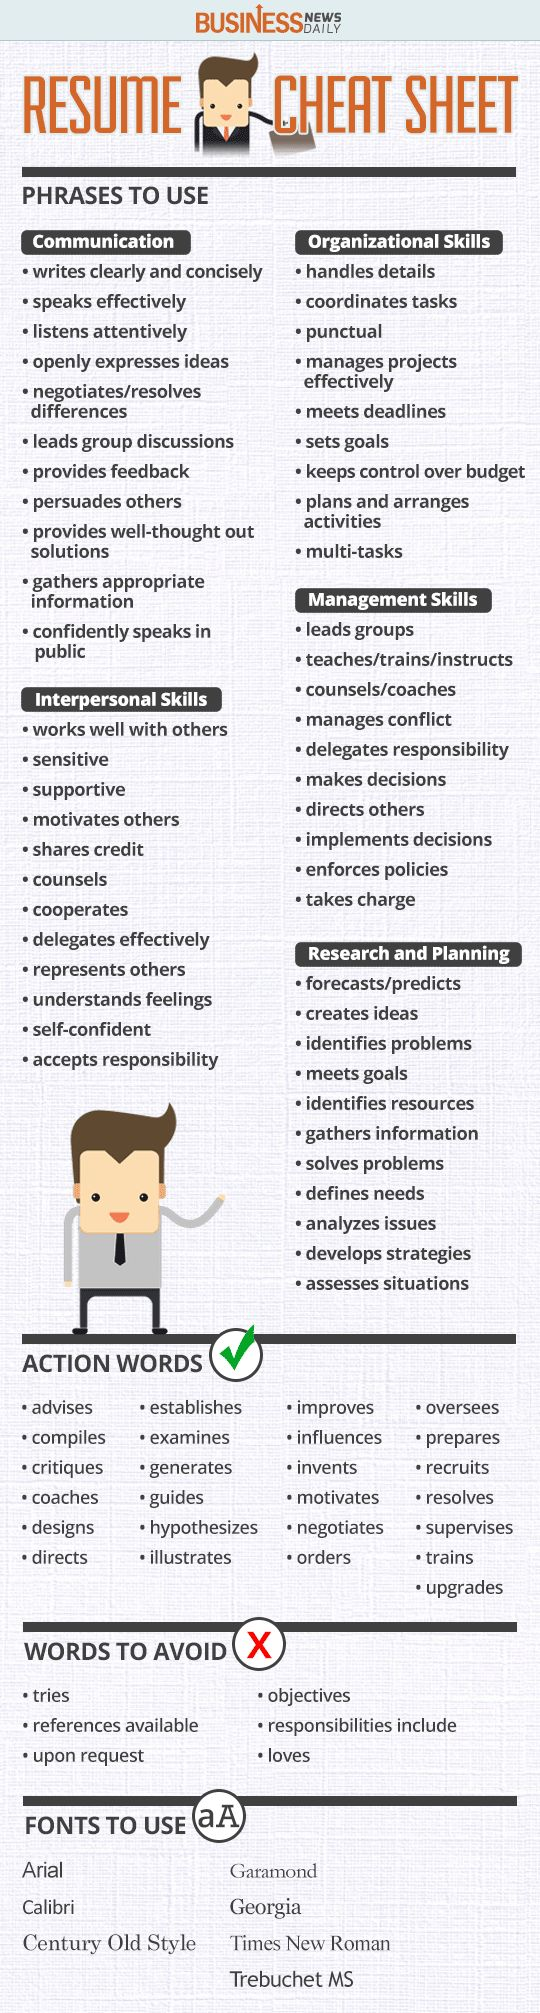 Opposenewapstandardsus  Fascinating  Ideas About Resume On Pinterest  Cv Format Resume Cv And  With Hot Resume Cheat Sheet Infographic Andrews Almost Done With A Complete Unit On Employment Which With Cute Microsoft Resume Templates Also Acting Resume Template In Addition How To Make A Good Resume And Resume Writing Tips As Well As Marketing Resume Additionally Resumes Online From Pinterestcom With Opposenewapstandardsus  Hot  Ideas About Resume On Pinterest  Cv Format Resume Cv And  With Cute Resume Cheat Sheet Infographic Andrews Almost Done With A Complete Unit On Employment Which And Fascinating Microsoft Resume Templates Also Acting Resume Template In Addition How To Make A Good Resume From Pinterestcom